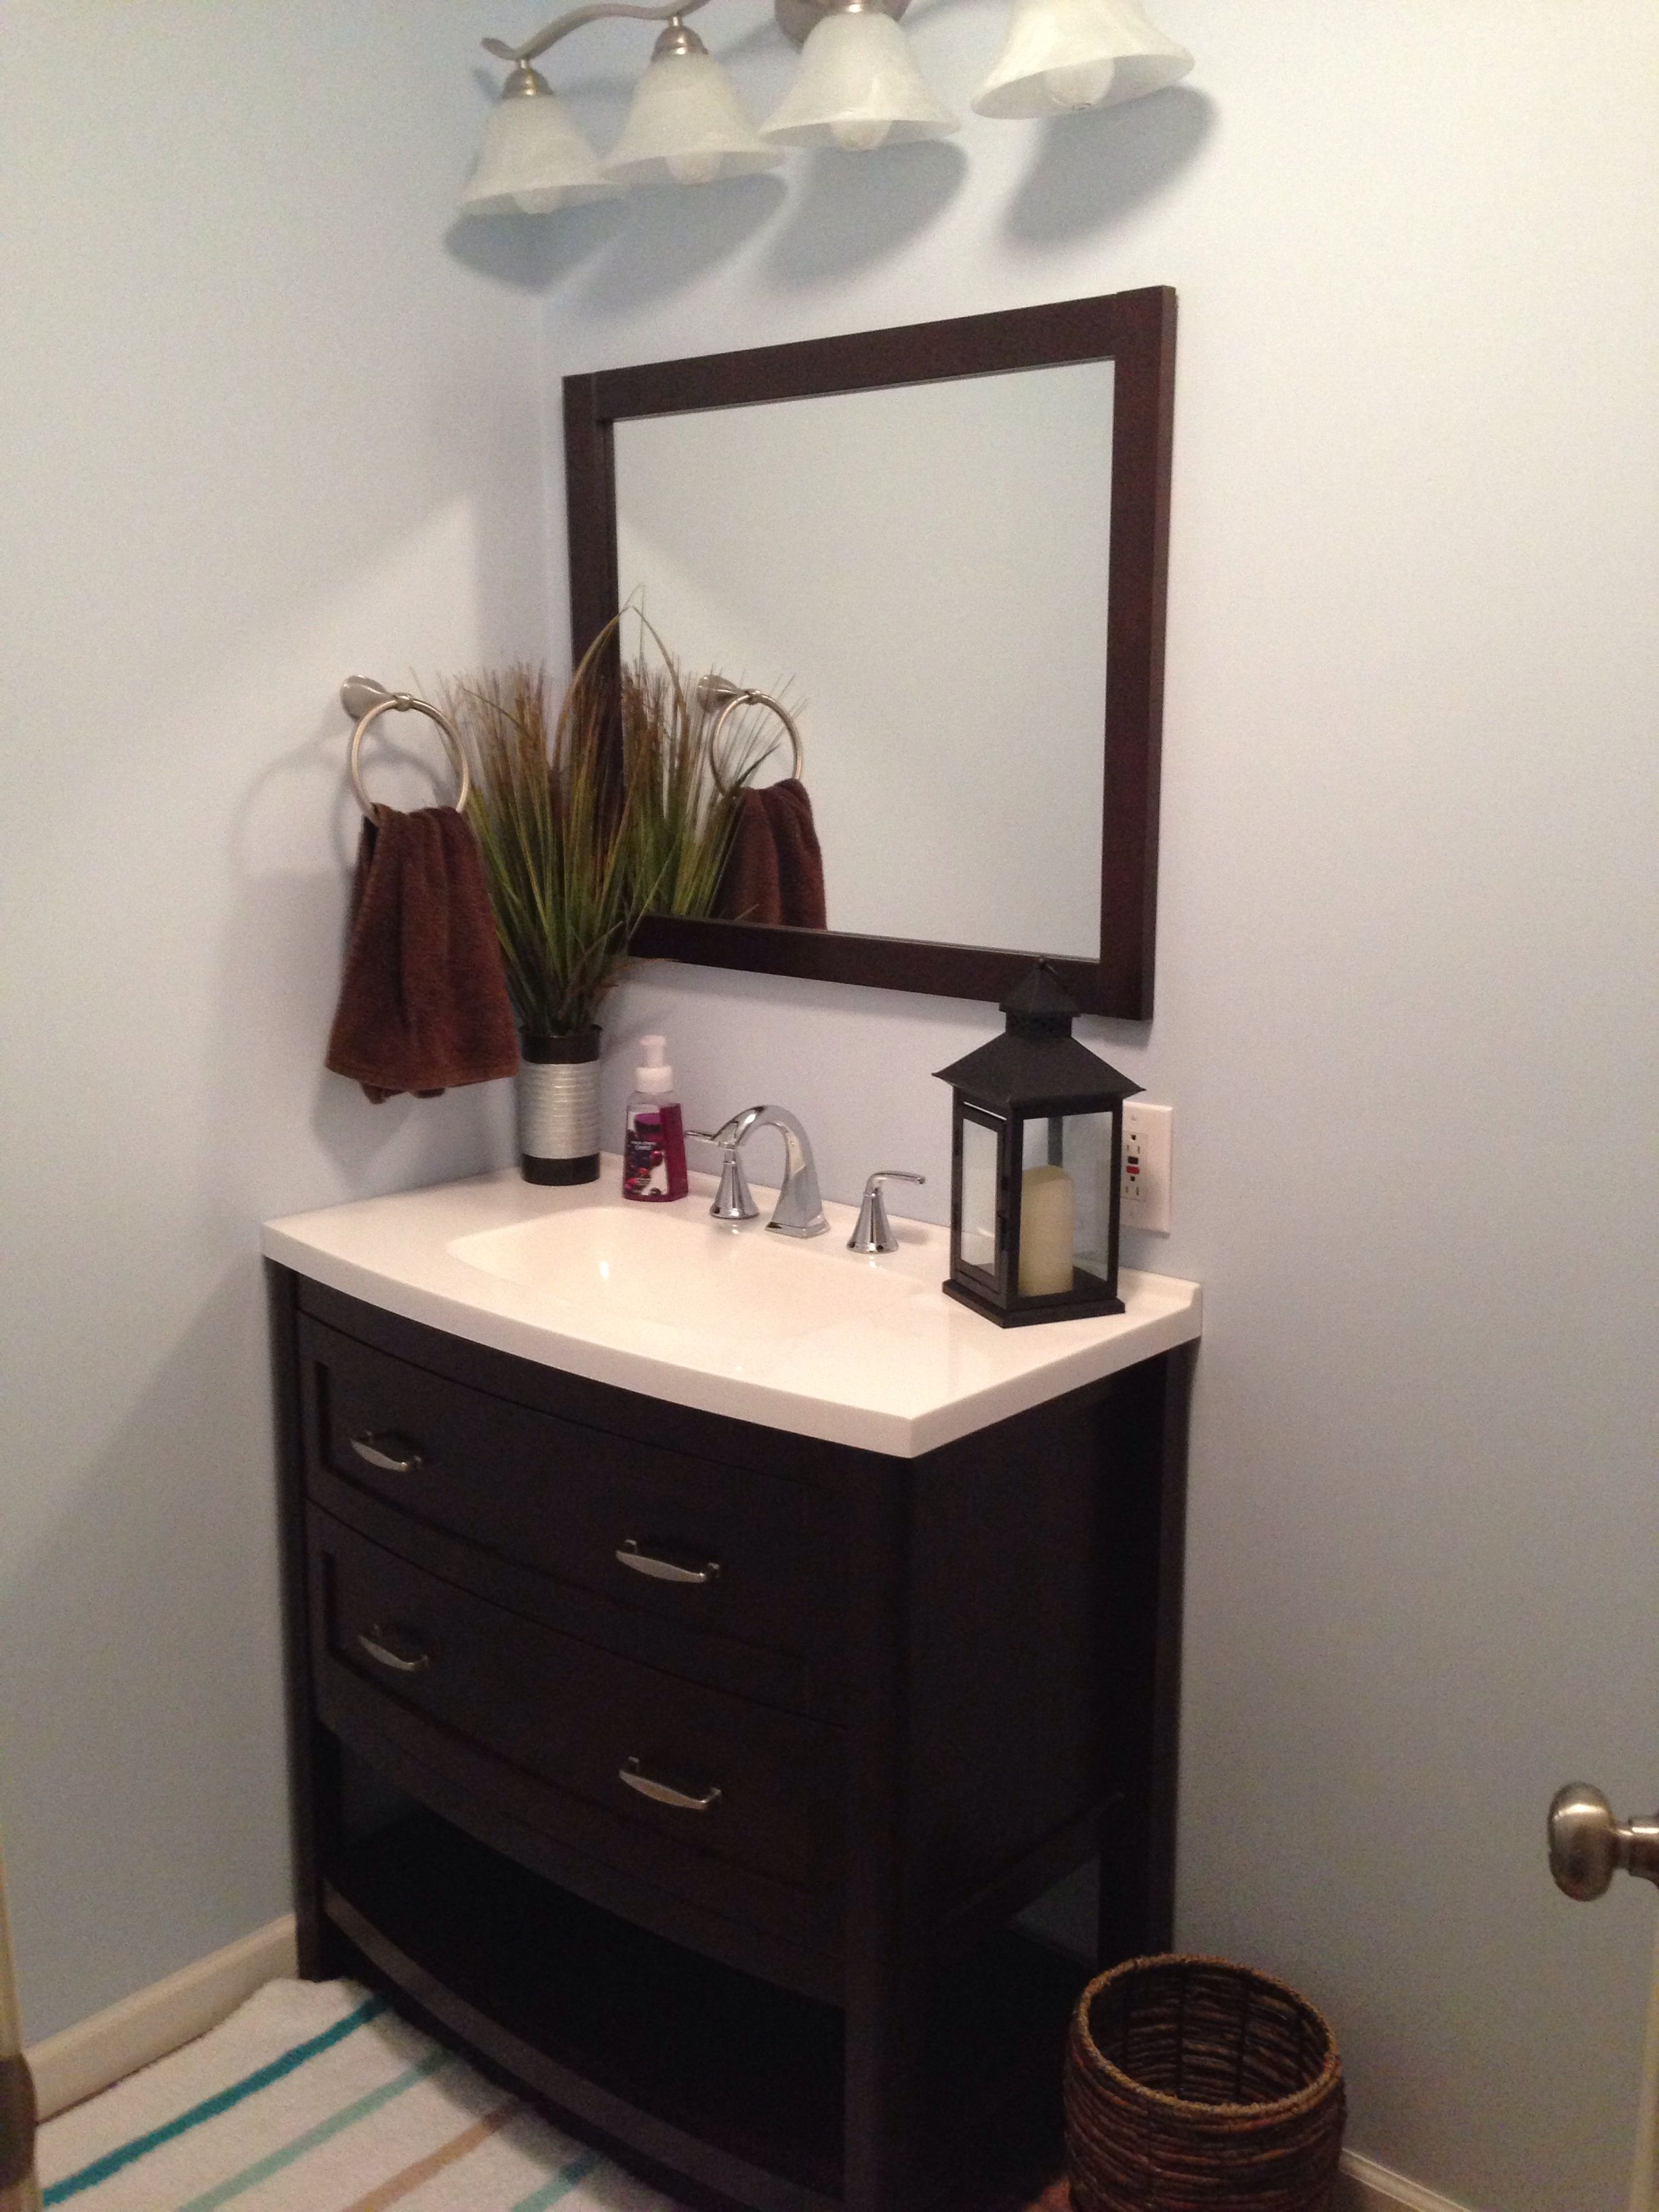 My brand new bathroom using Benjamin Moore Breath of Fresh